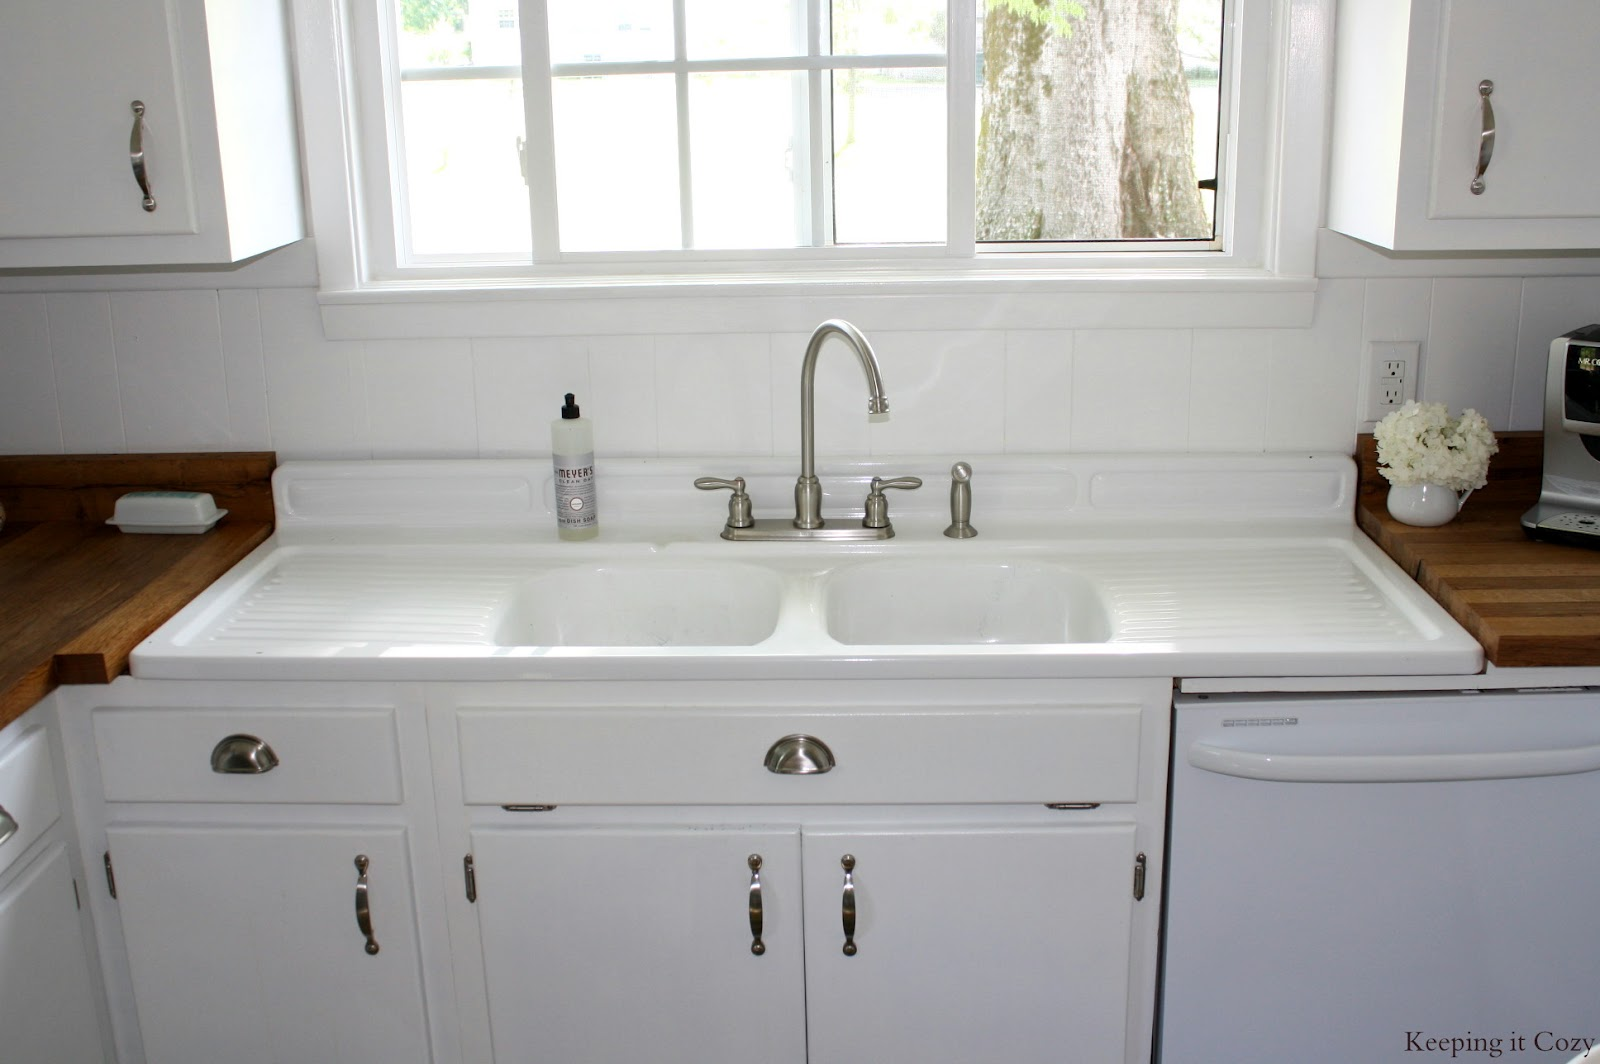 Farmhouse Kitchen Sinks Samsung Appliance Bundle Remodelaholic Country With Diy Reclaimed Wood